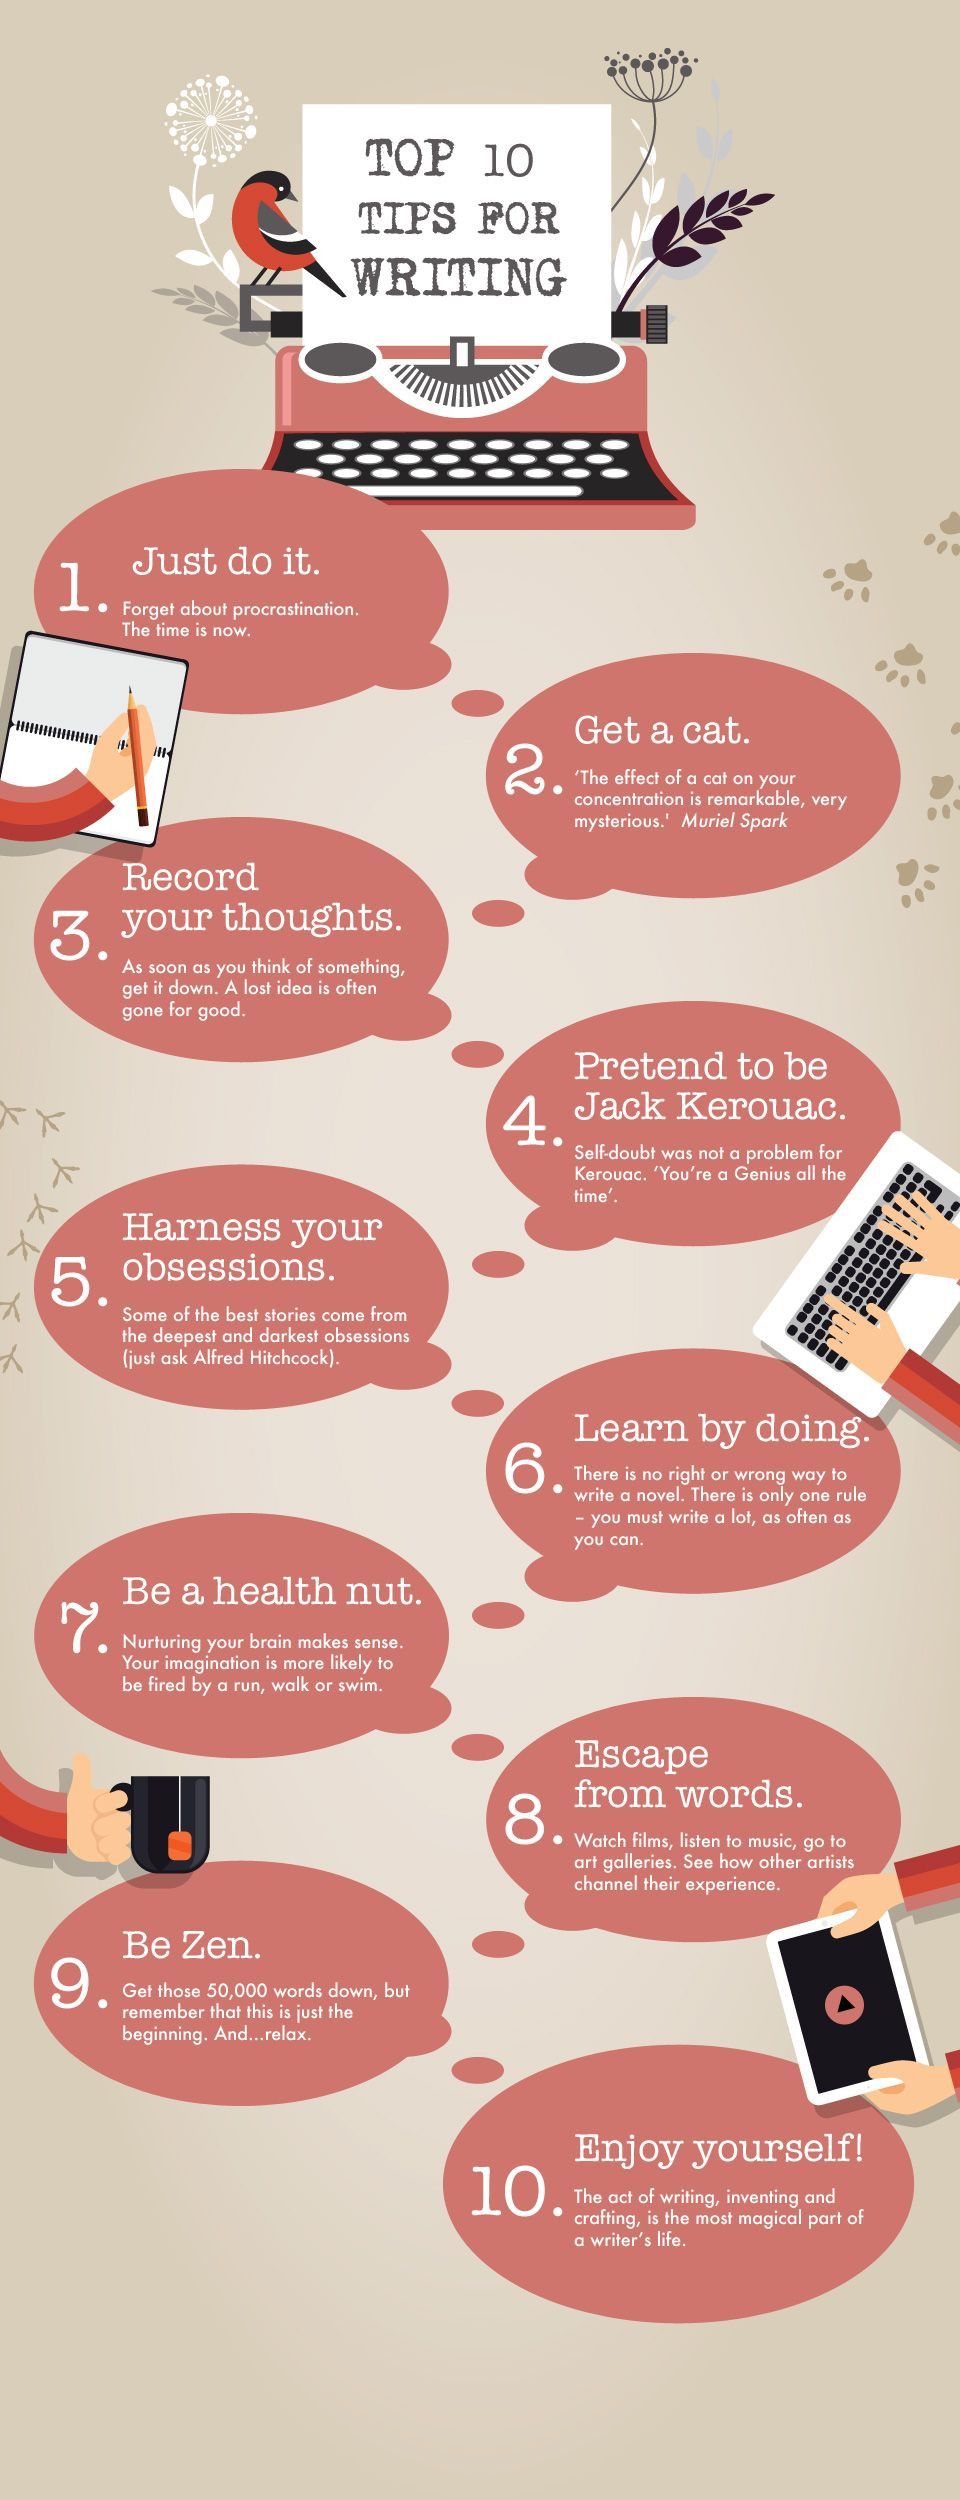 10 Creative Writing Tips From The Open University